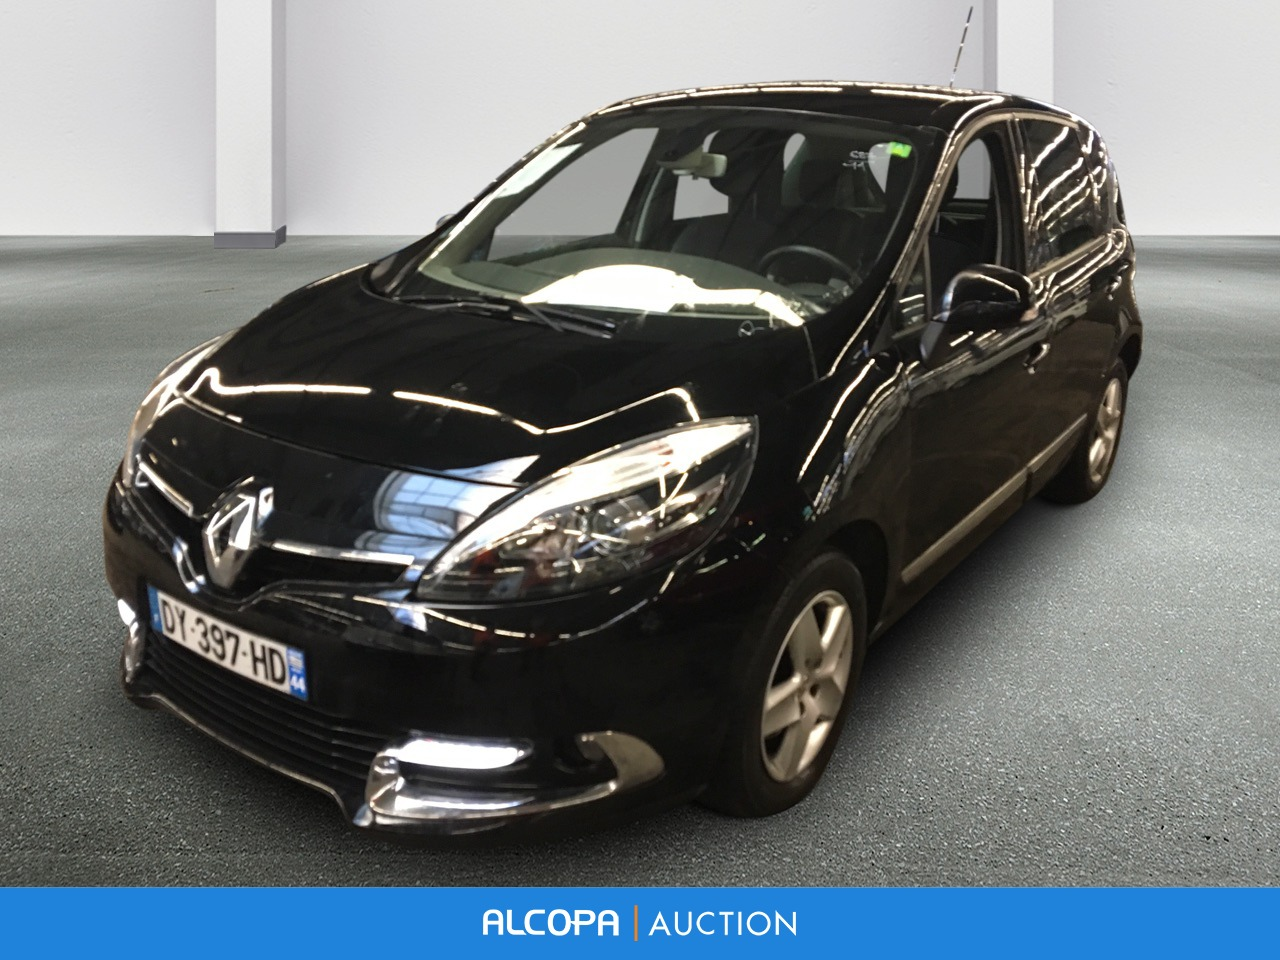 renault scenic iii business scenic dci 110 energy eco2 business beauvais alcopa auction. Black Bedroom Furniture Sets. Home Design Ideas